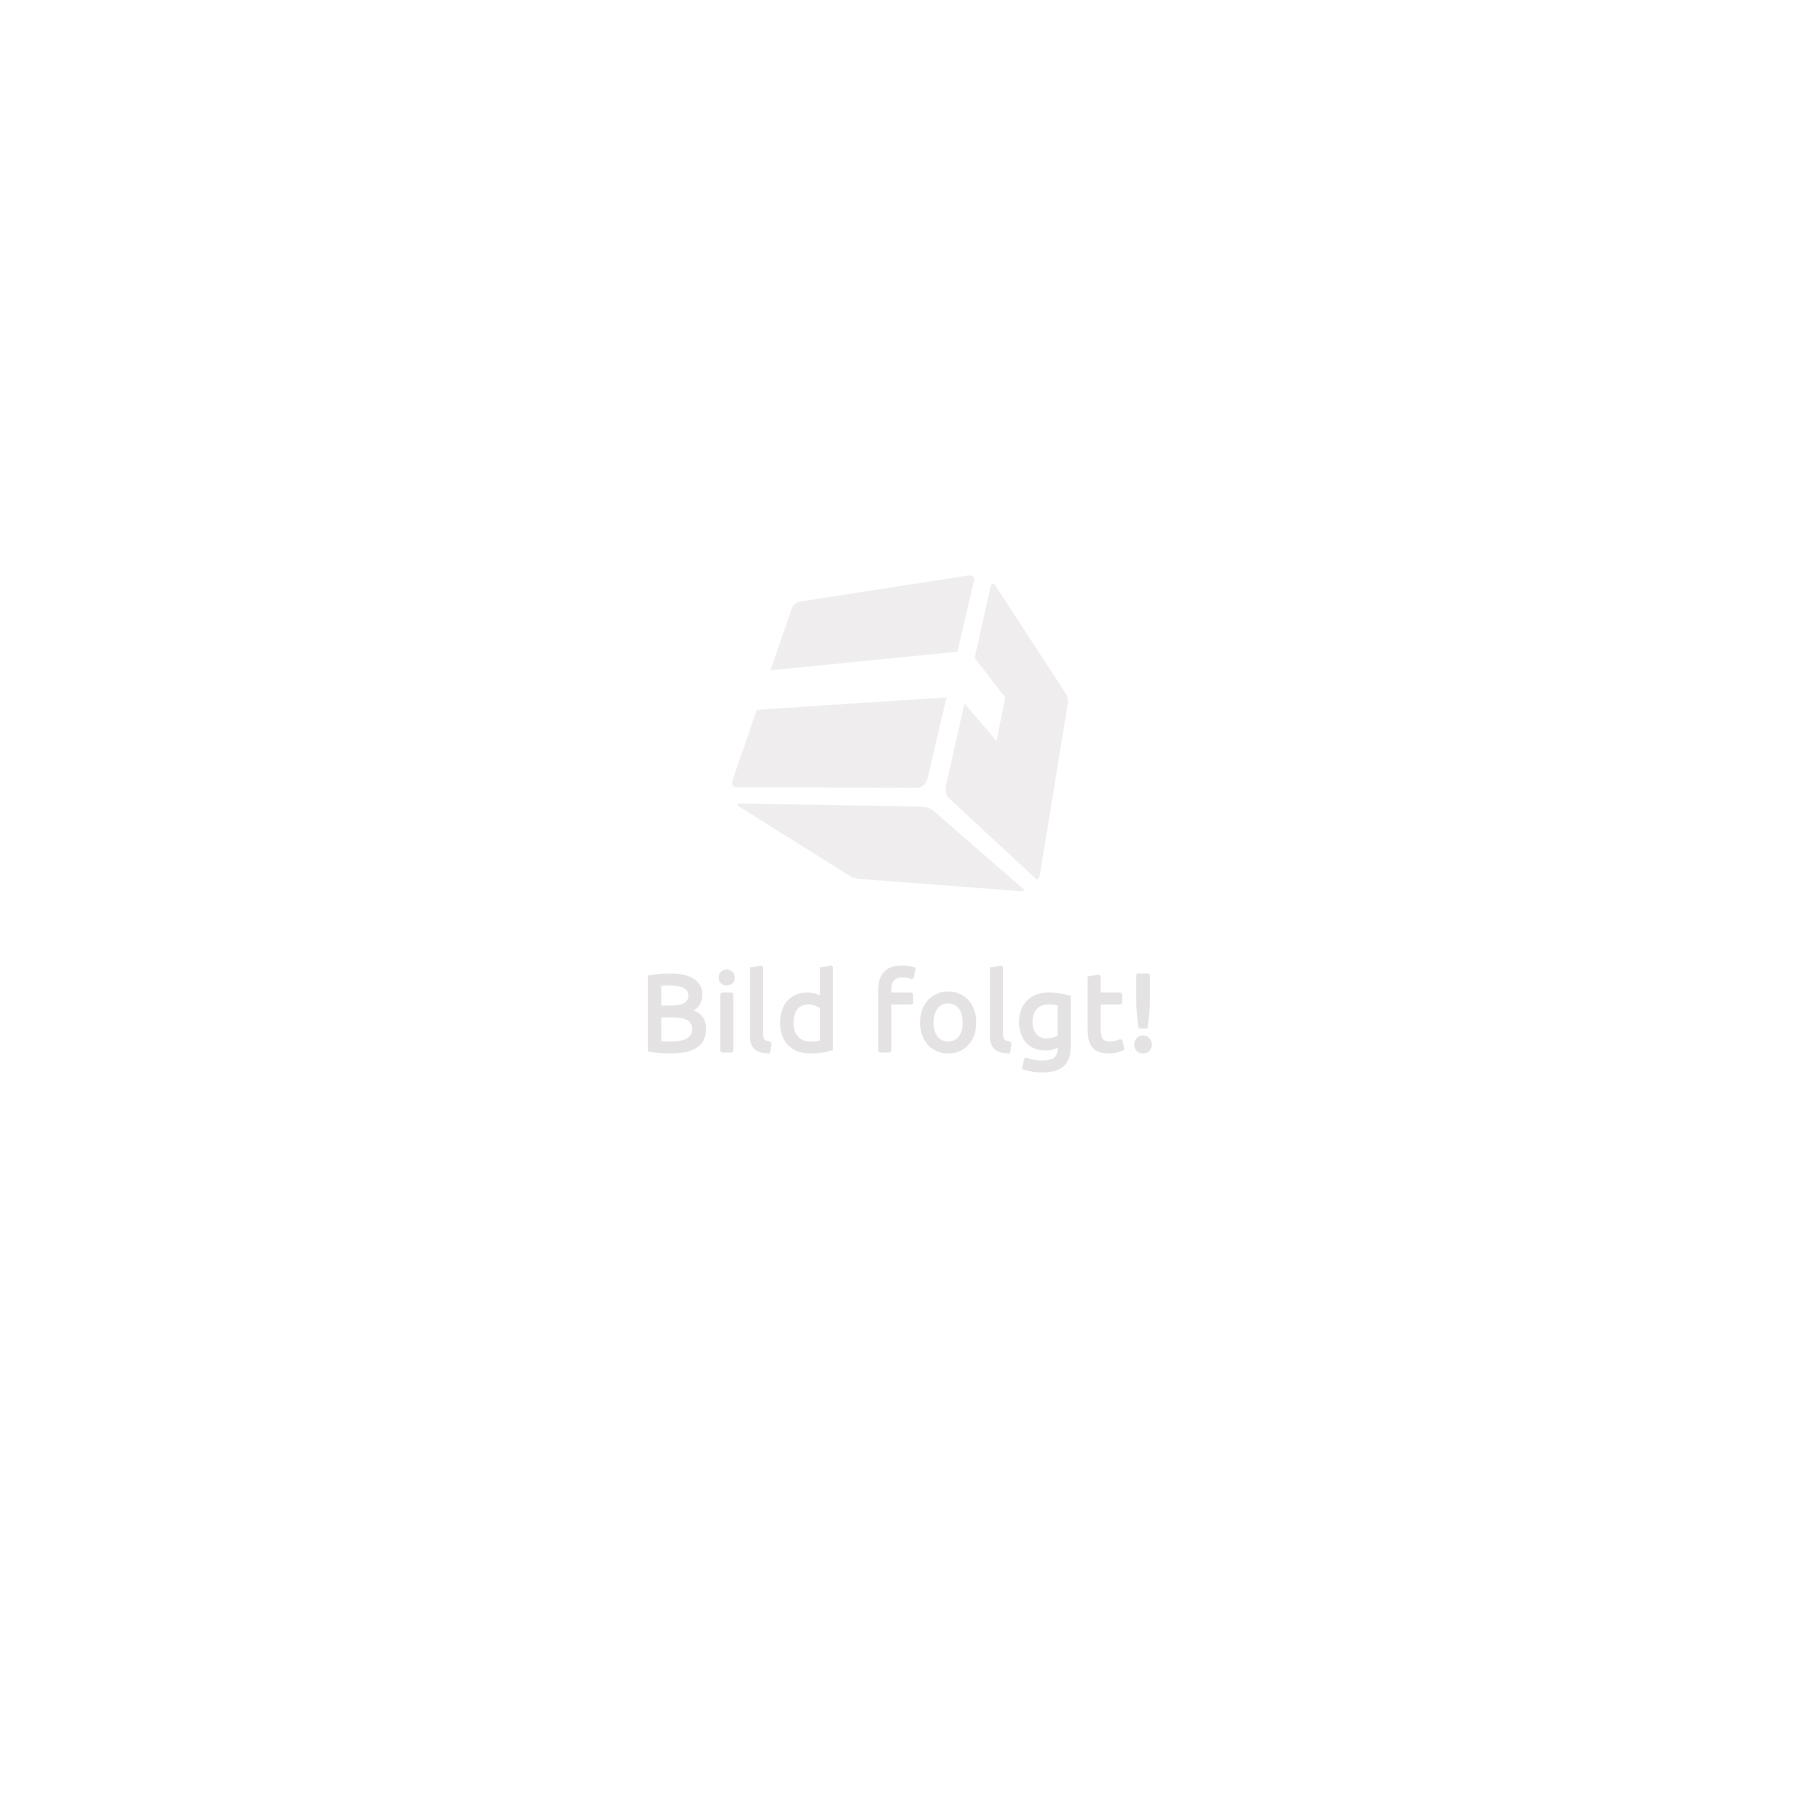 Preacher Bicep Arm Curl Bench Training Seated Workout Adjustable Home Fitness Ebay